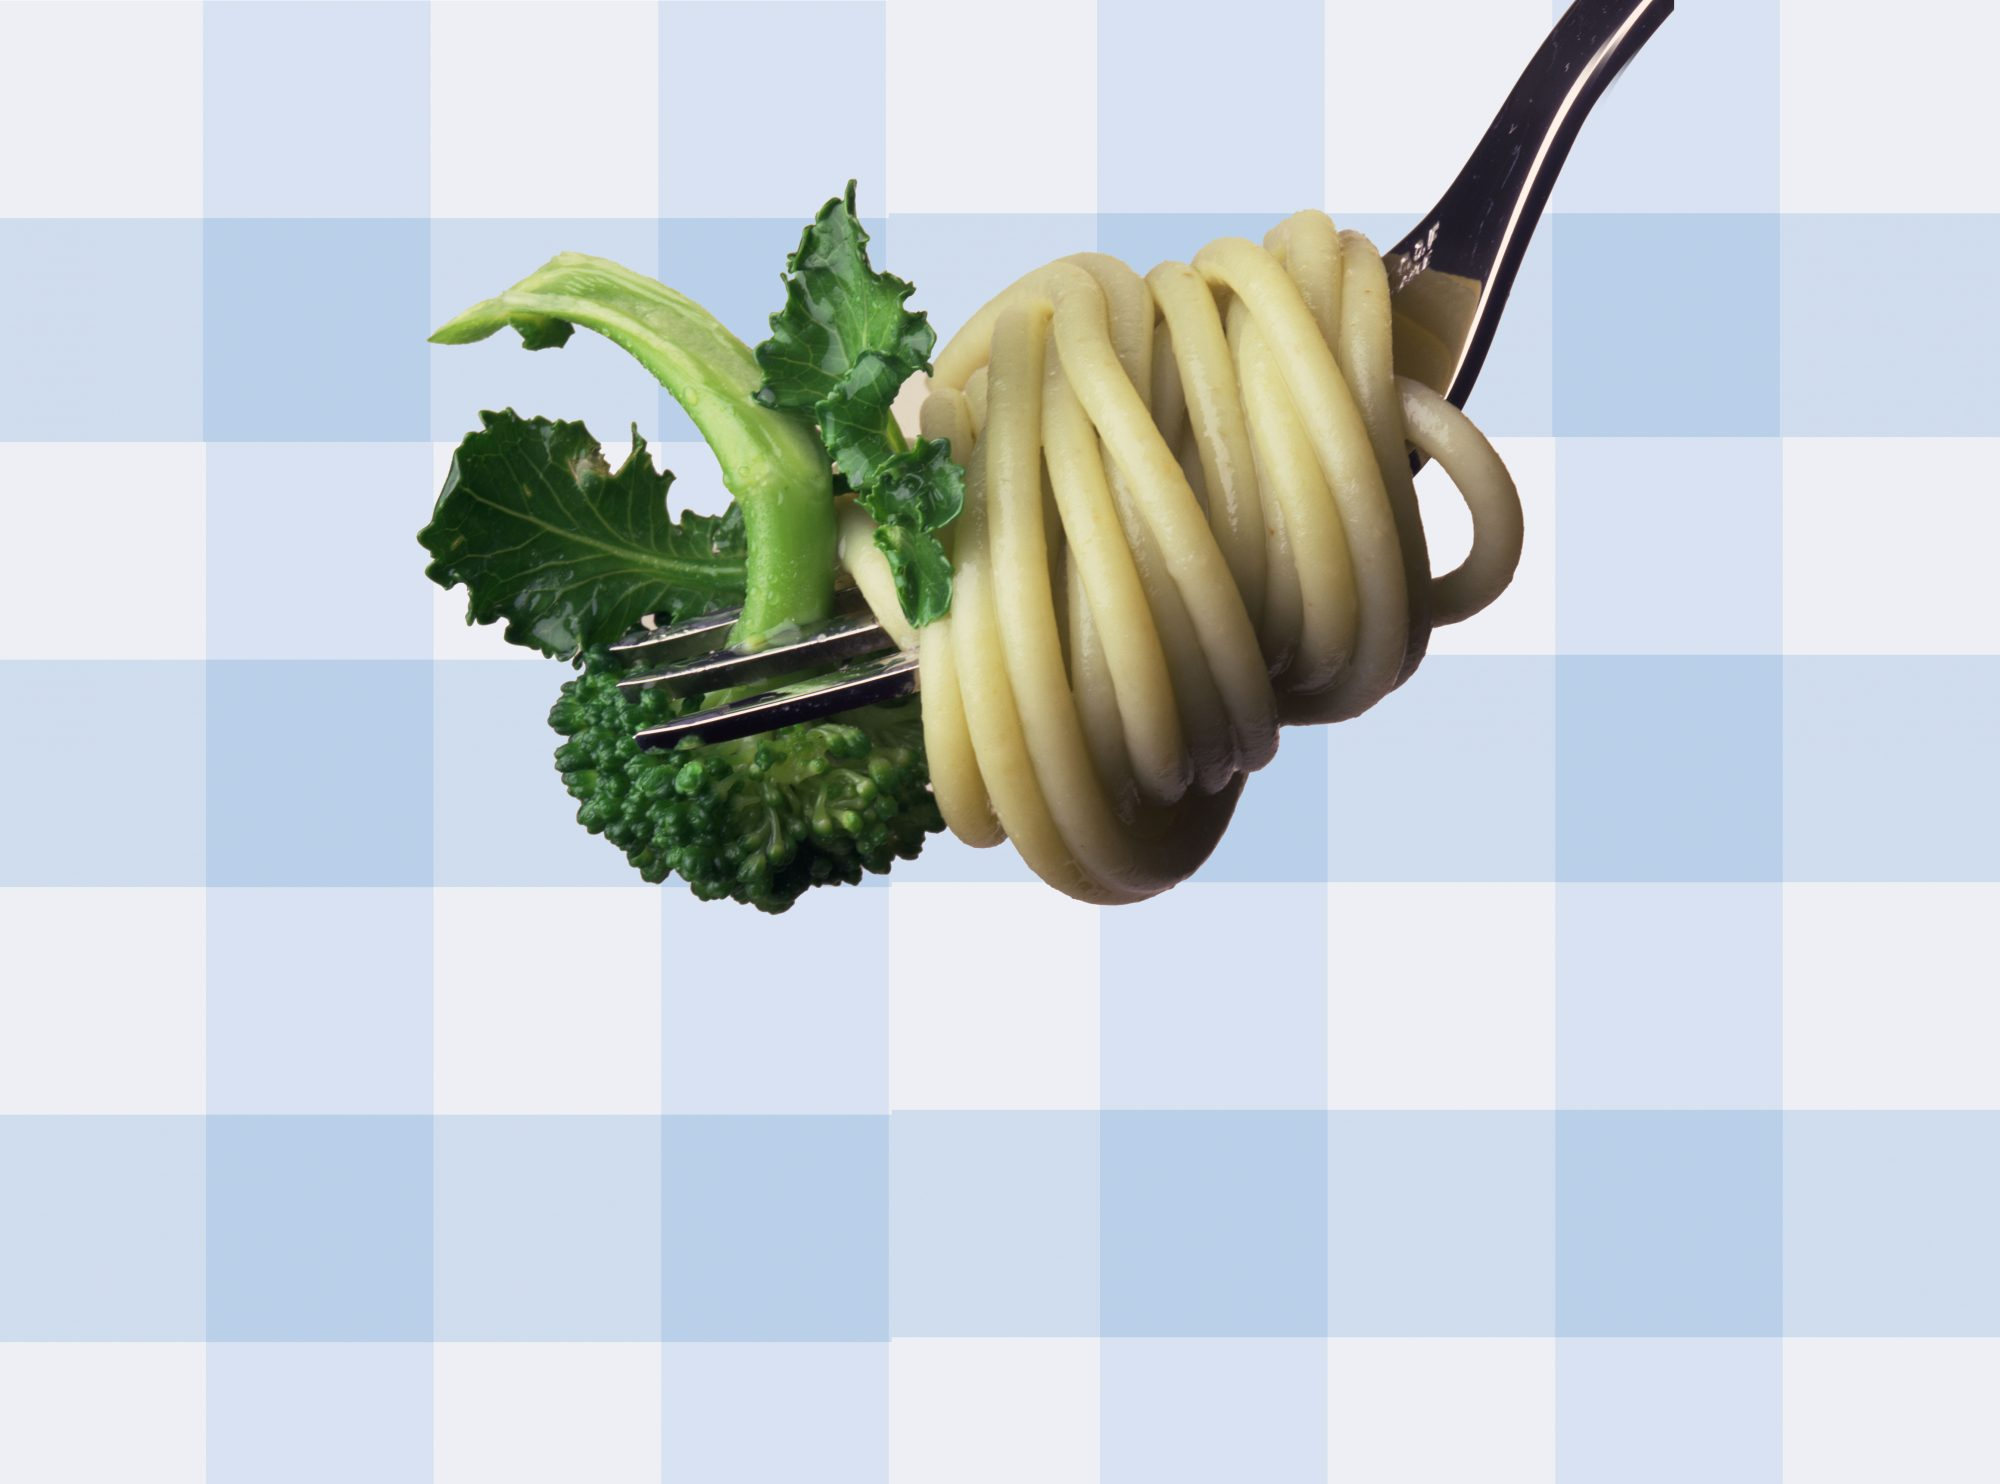 The Anti-Aging Vegetable You Never Knew Made Pasta More Delicious